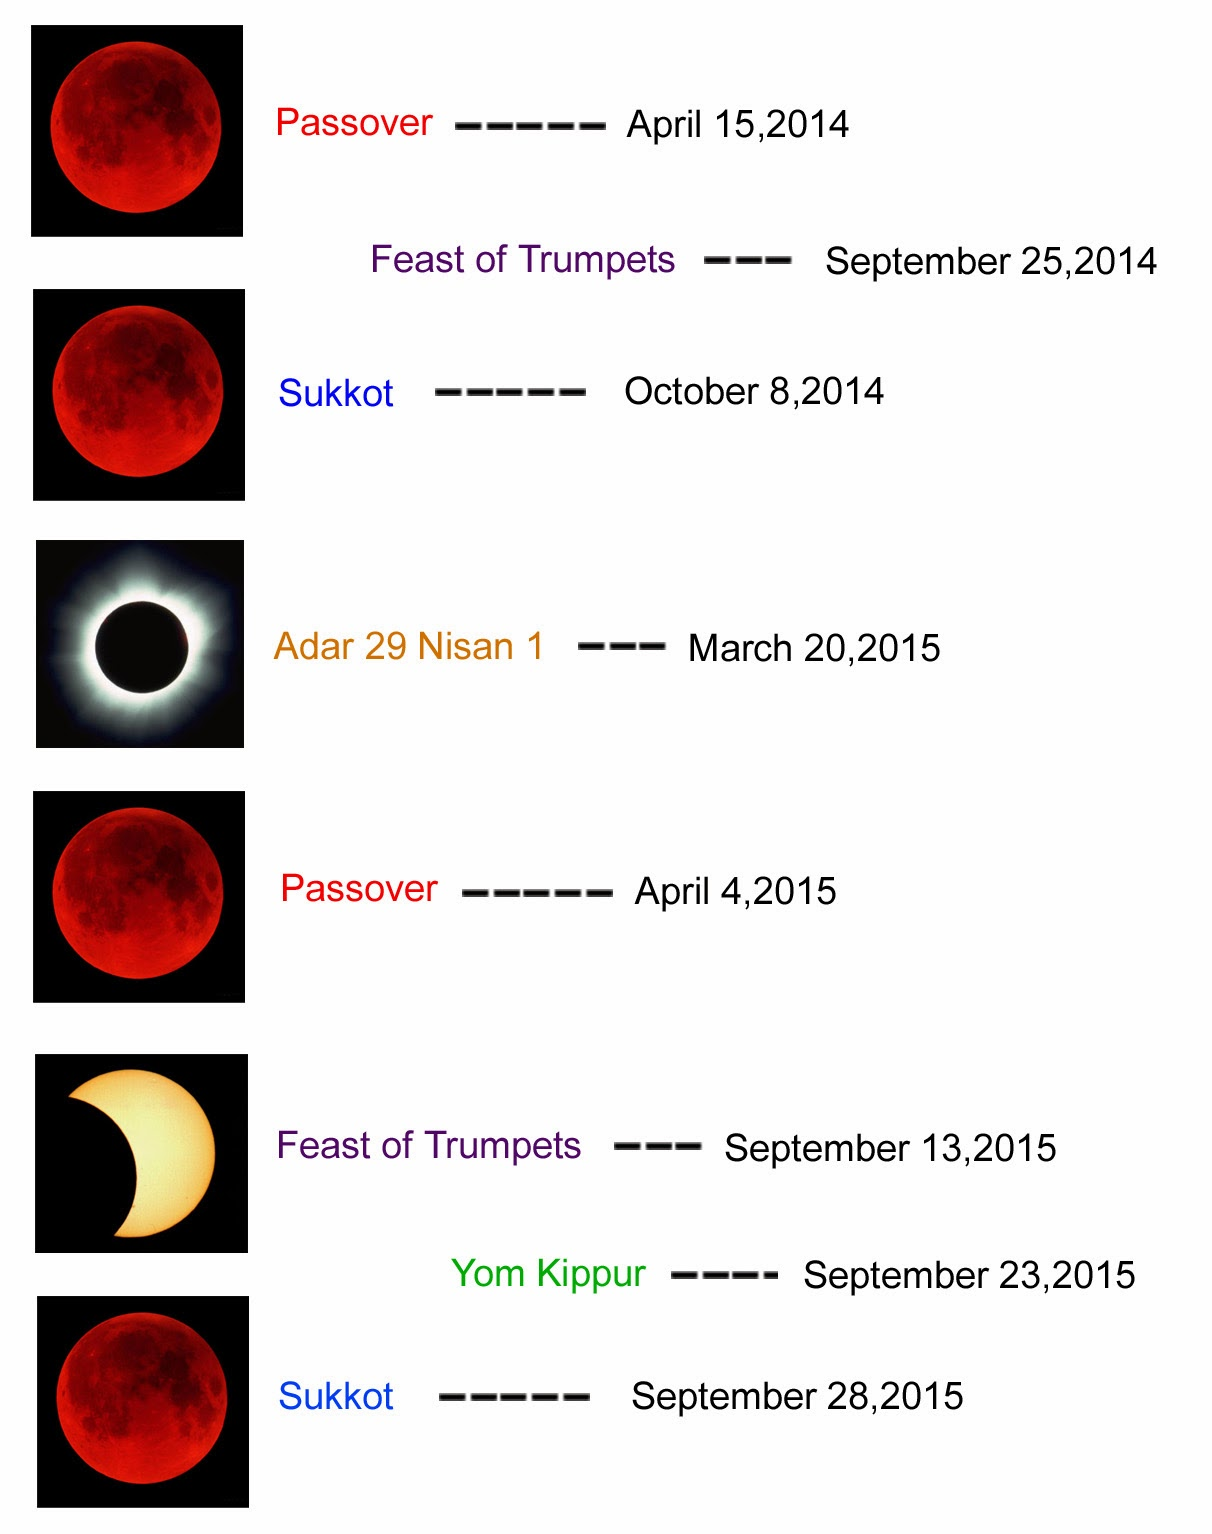 Next blood moon dates